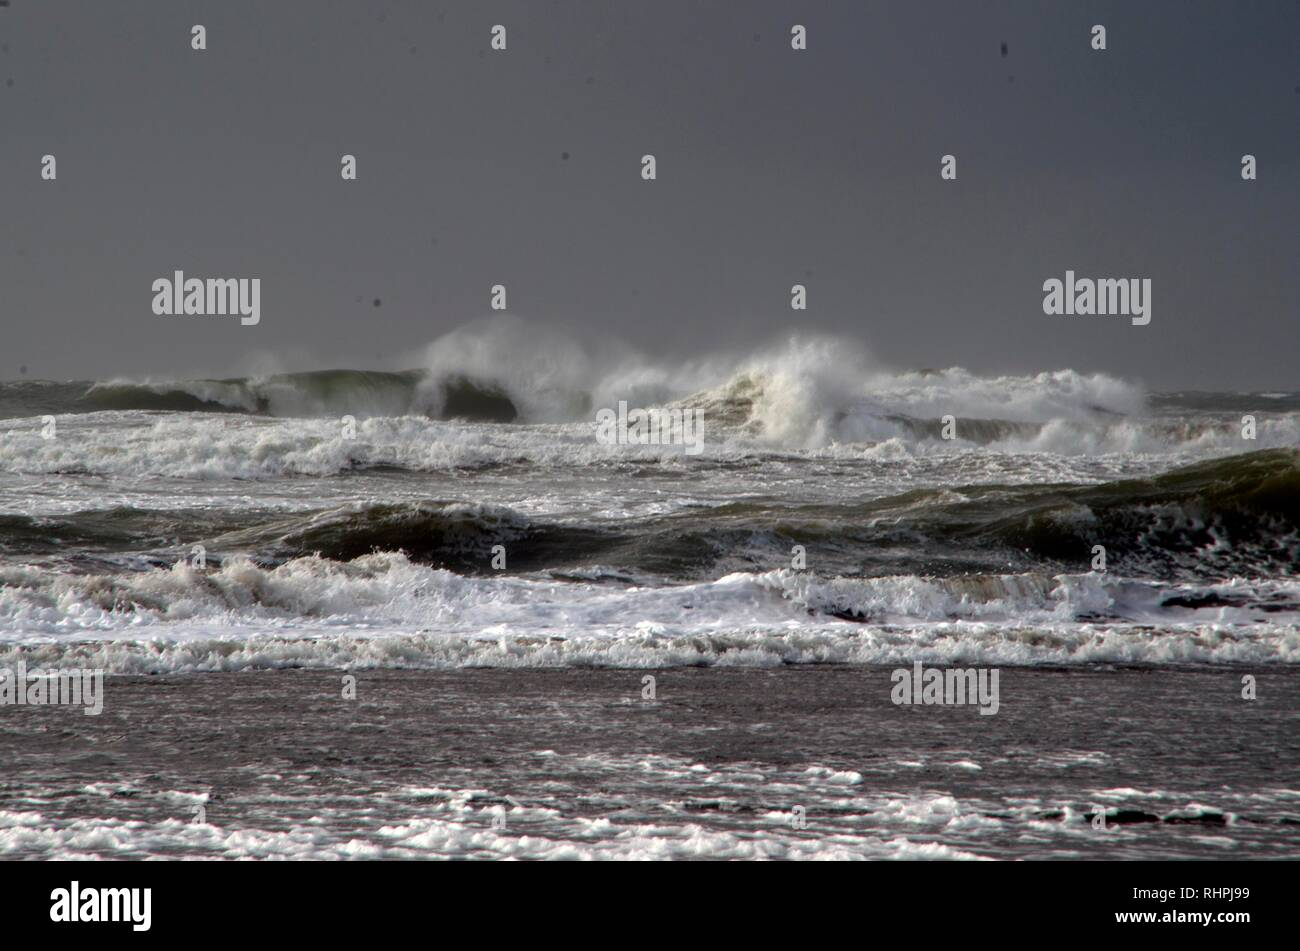 The waves at Ocean Beach in San Francisco can become choppy during storms and windy conditions. - Stock Image